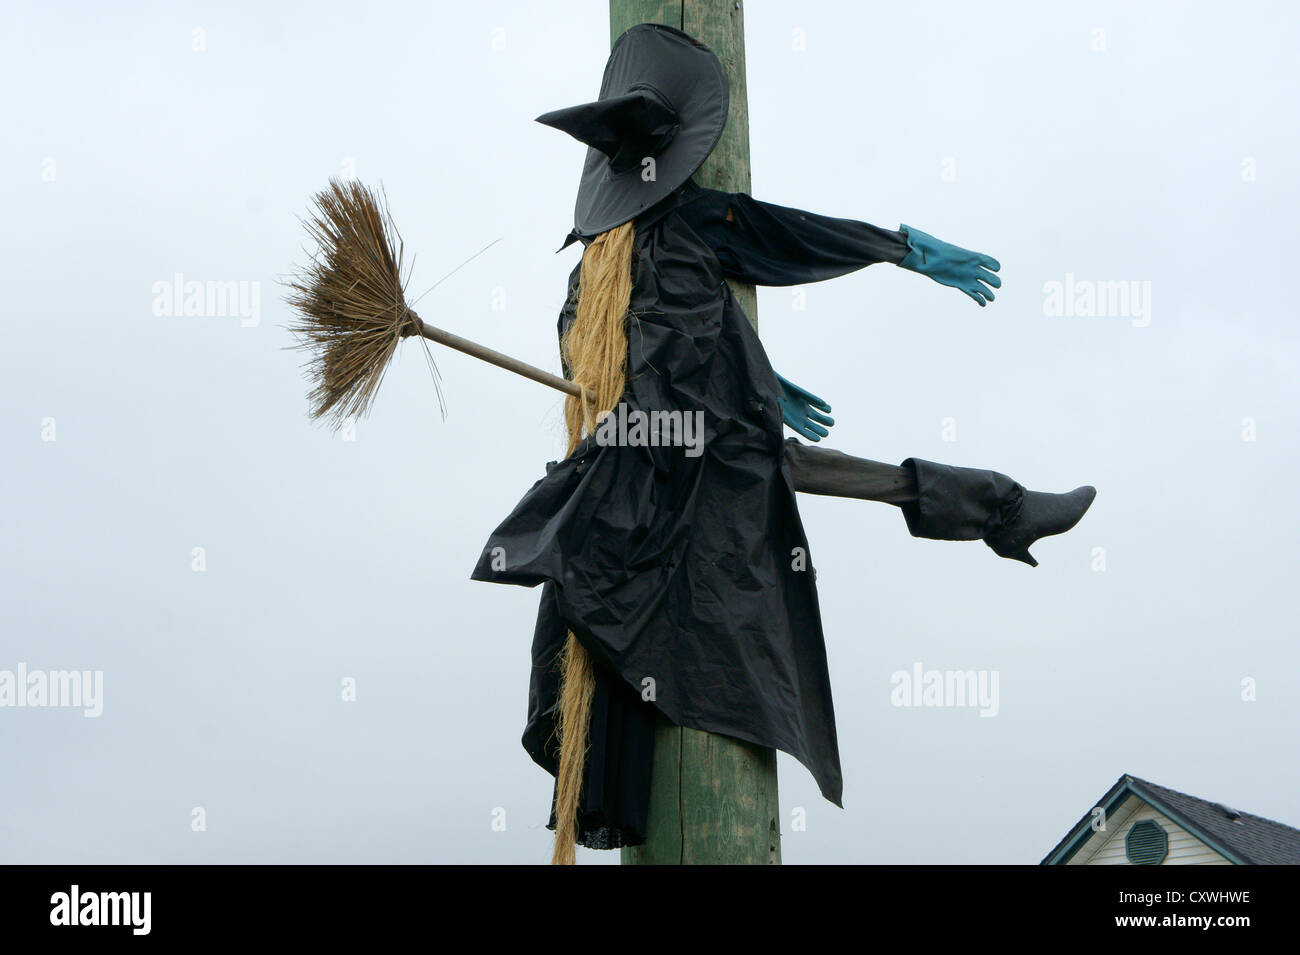 humorous halloween sculpture of an unlucky flying witch hitting a telephone pole - Flying Halloween Witch